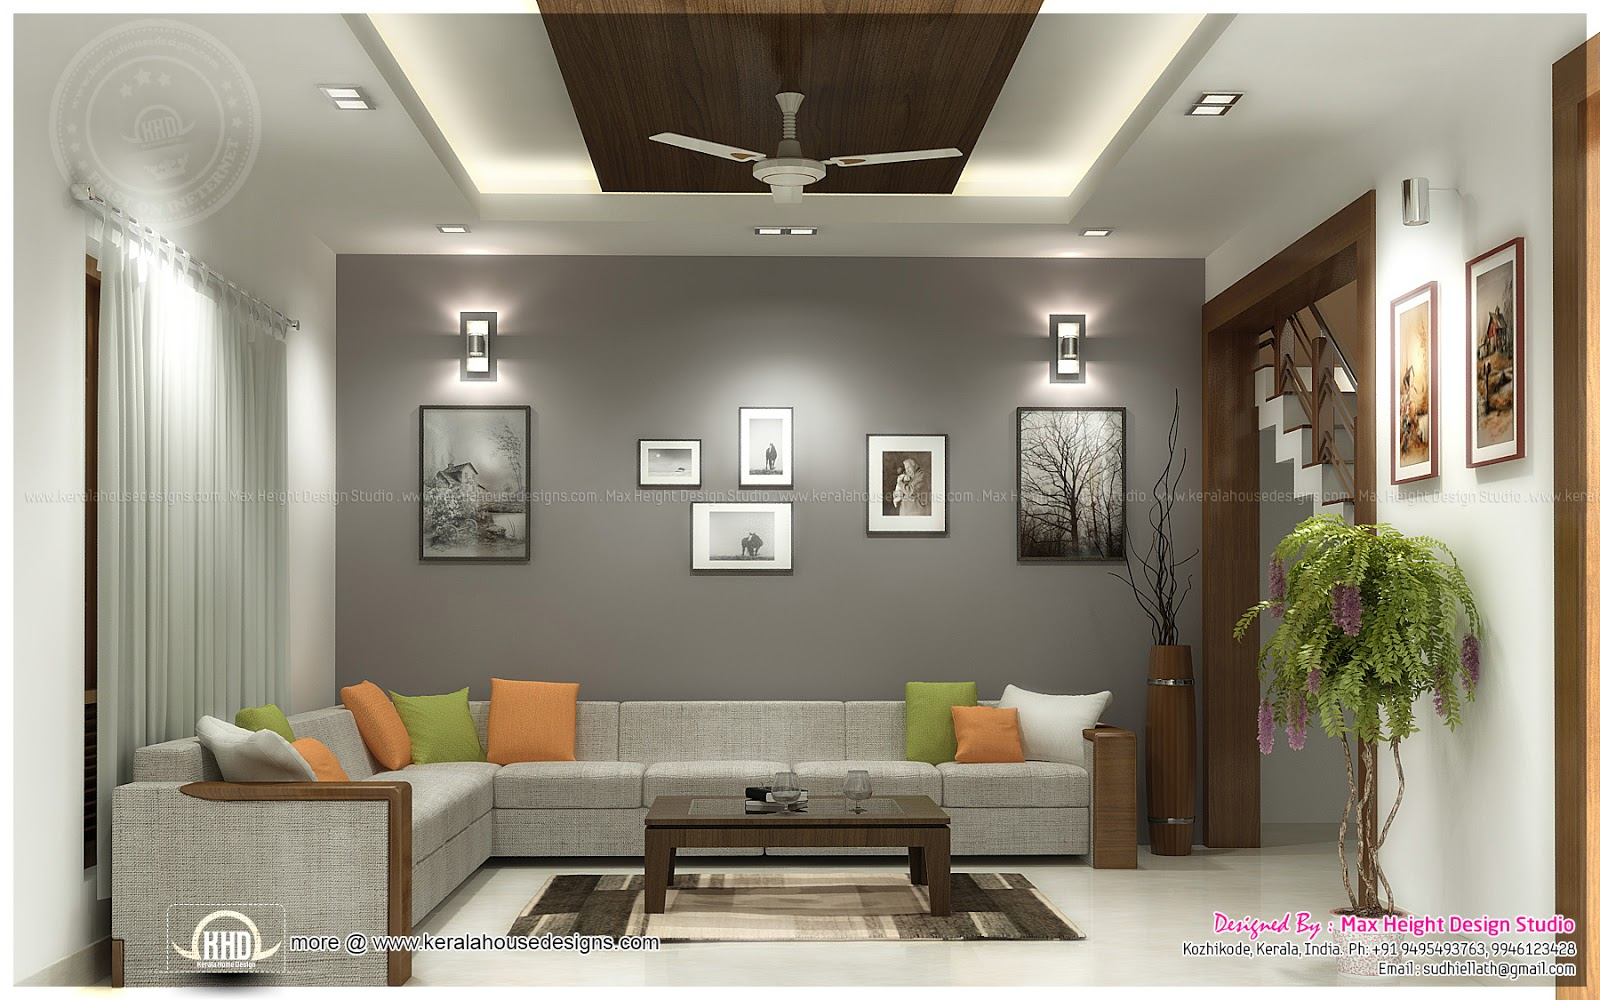 Beautiful interior ideas for home kerala home design and for House room design ideas